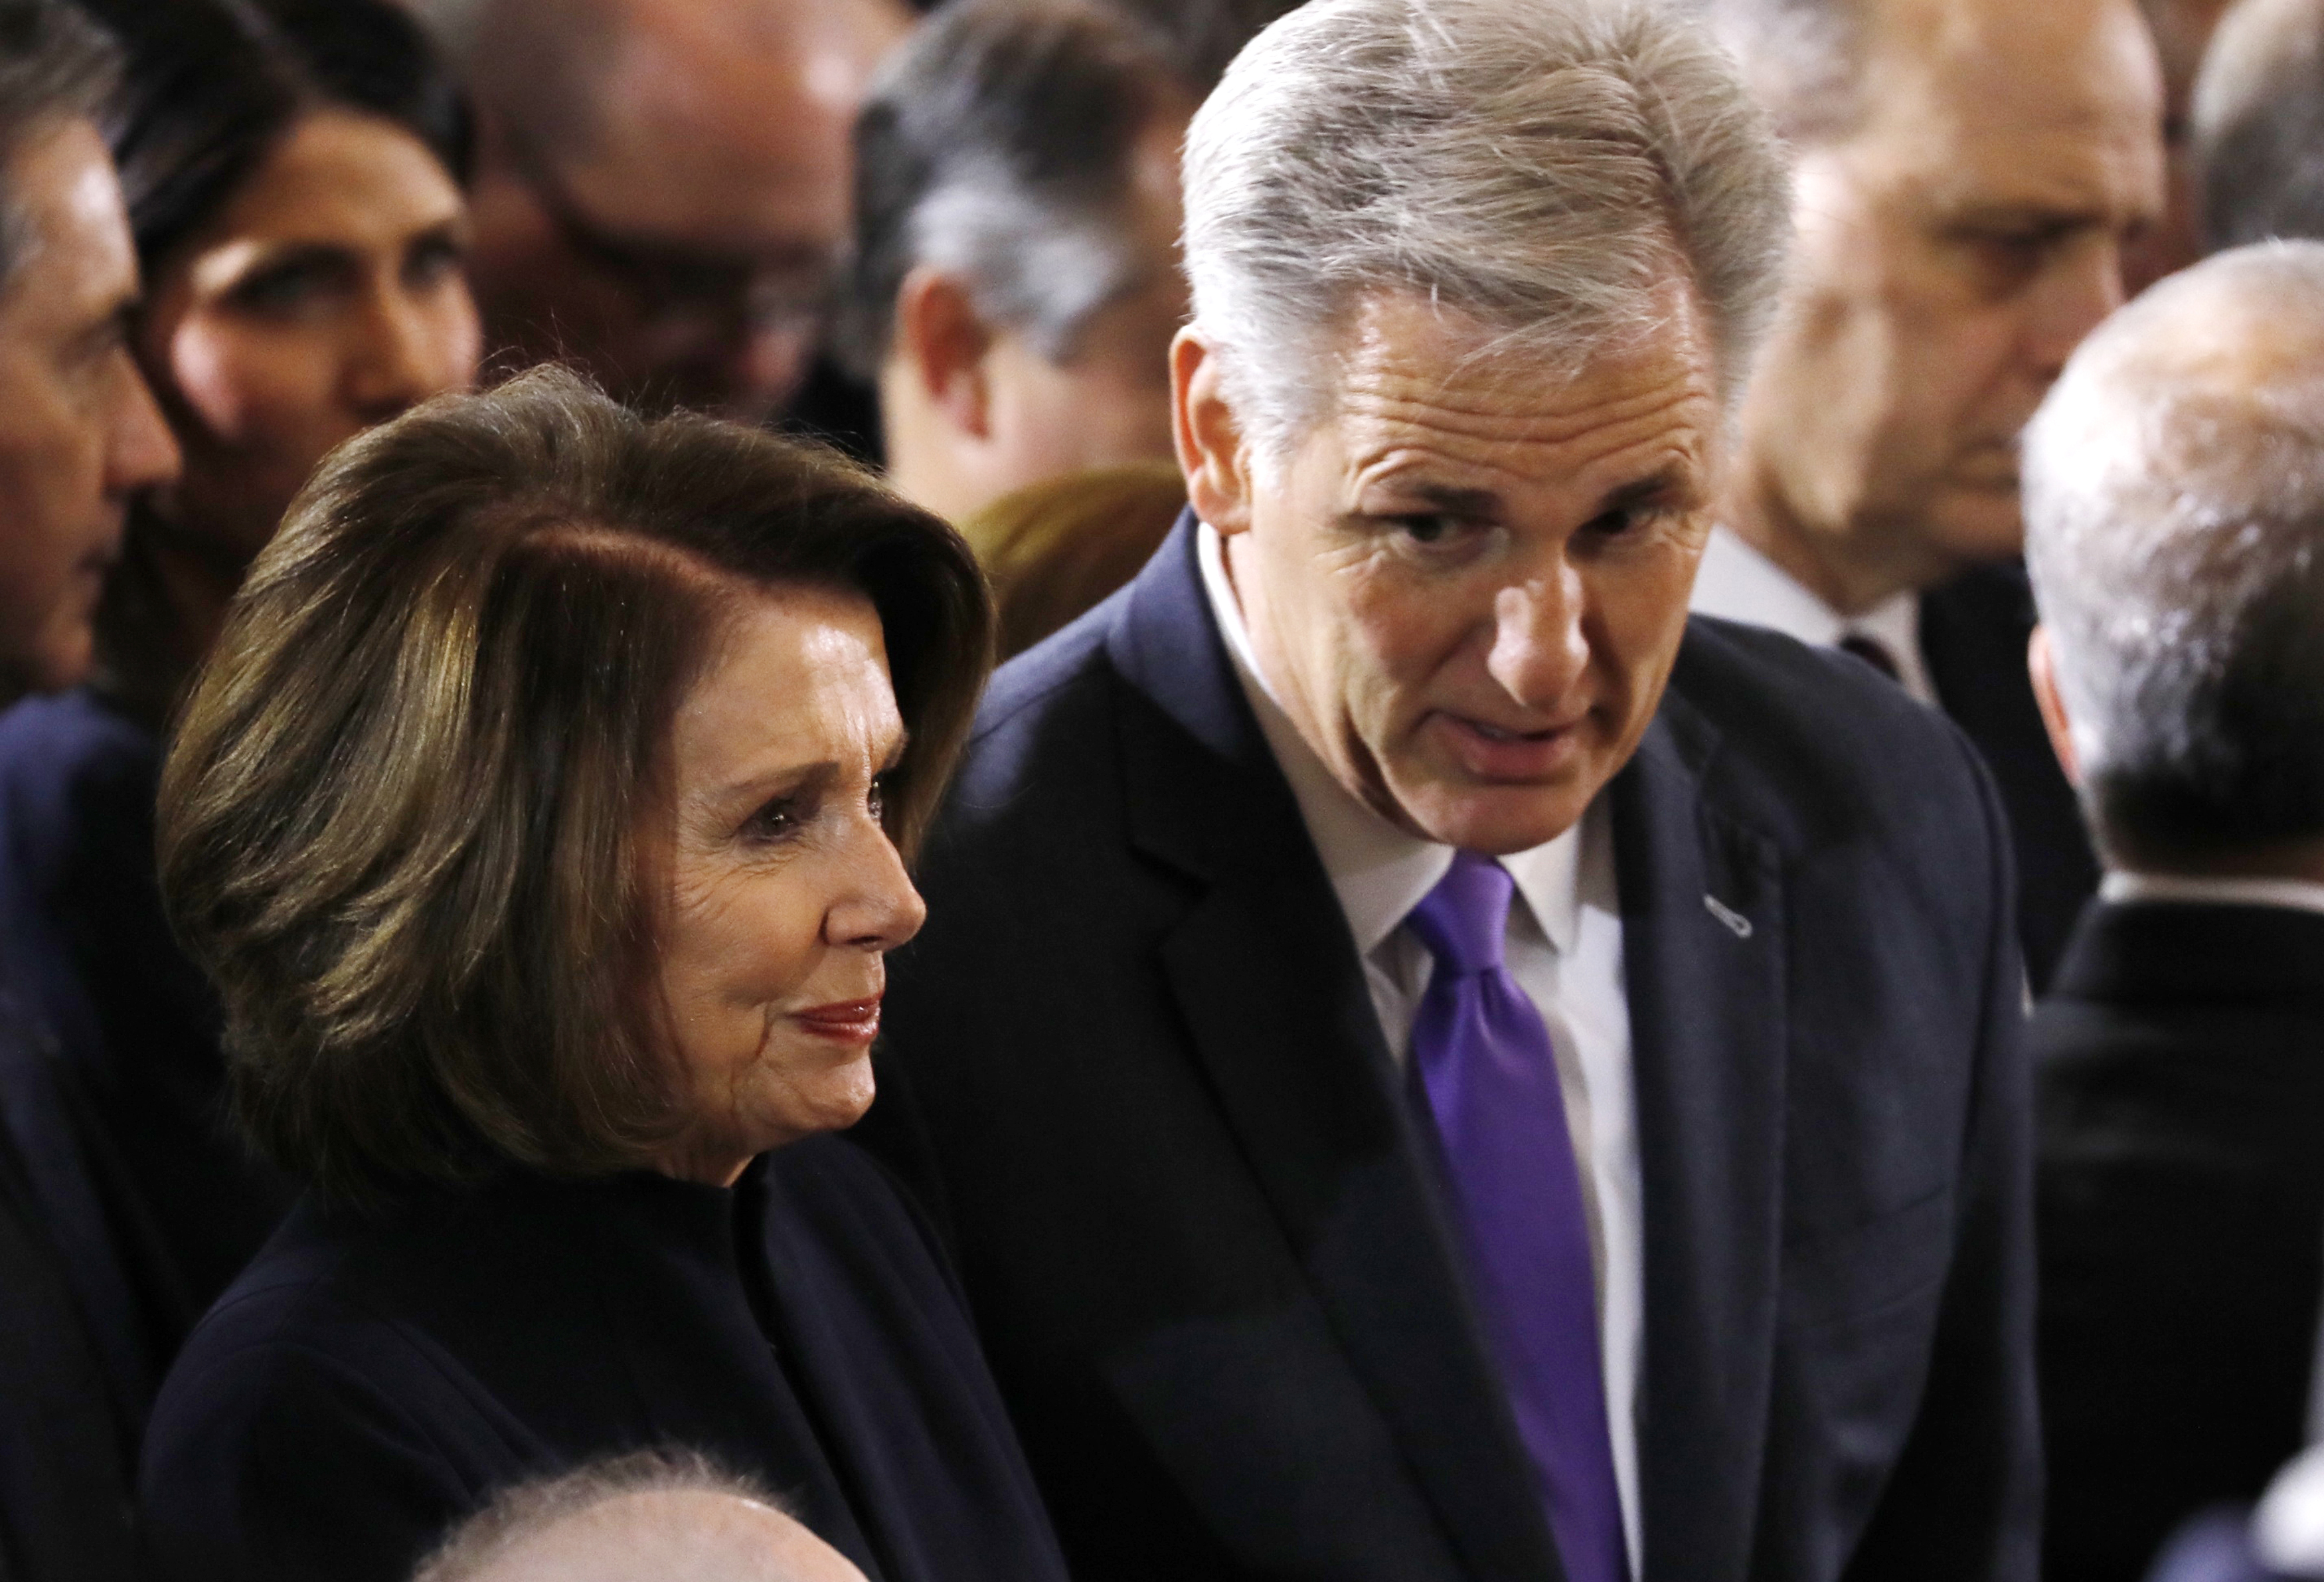 talkingpointsmemo.com - Matt Shuham - McCarthy: 'Unbecoming Of The Speaker' To Delay State Of The Union